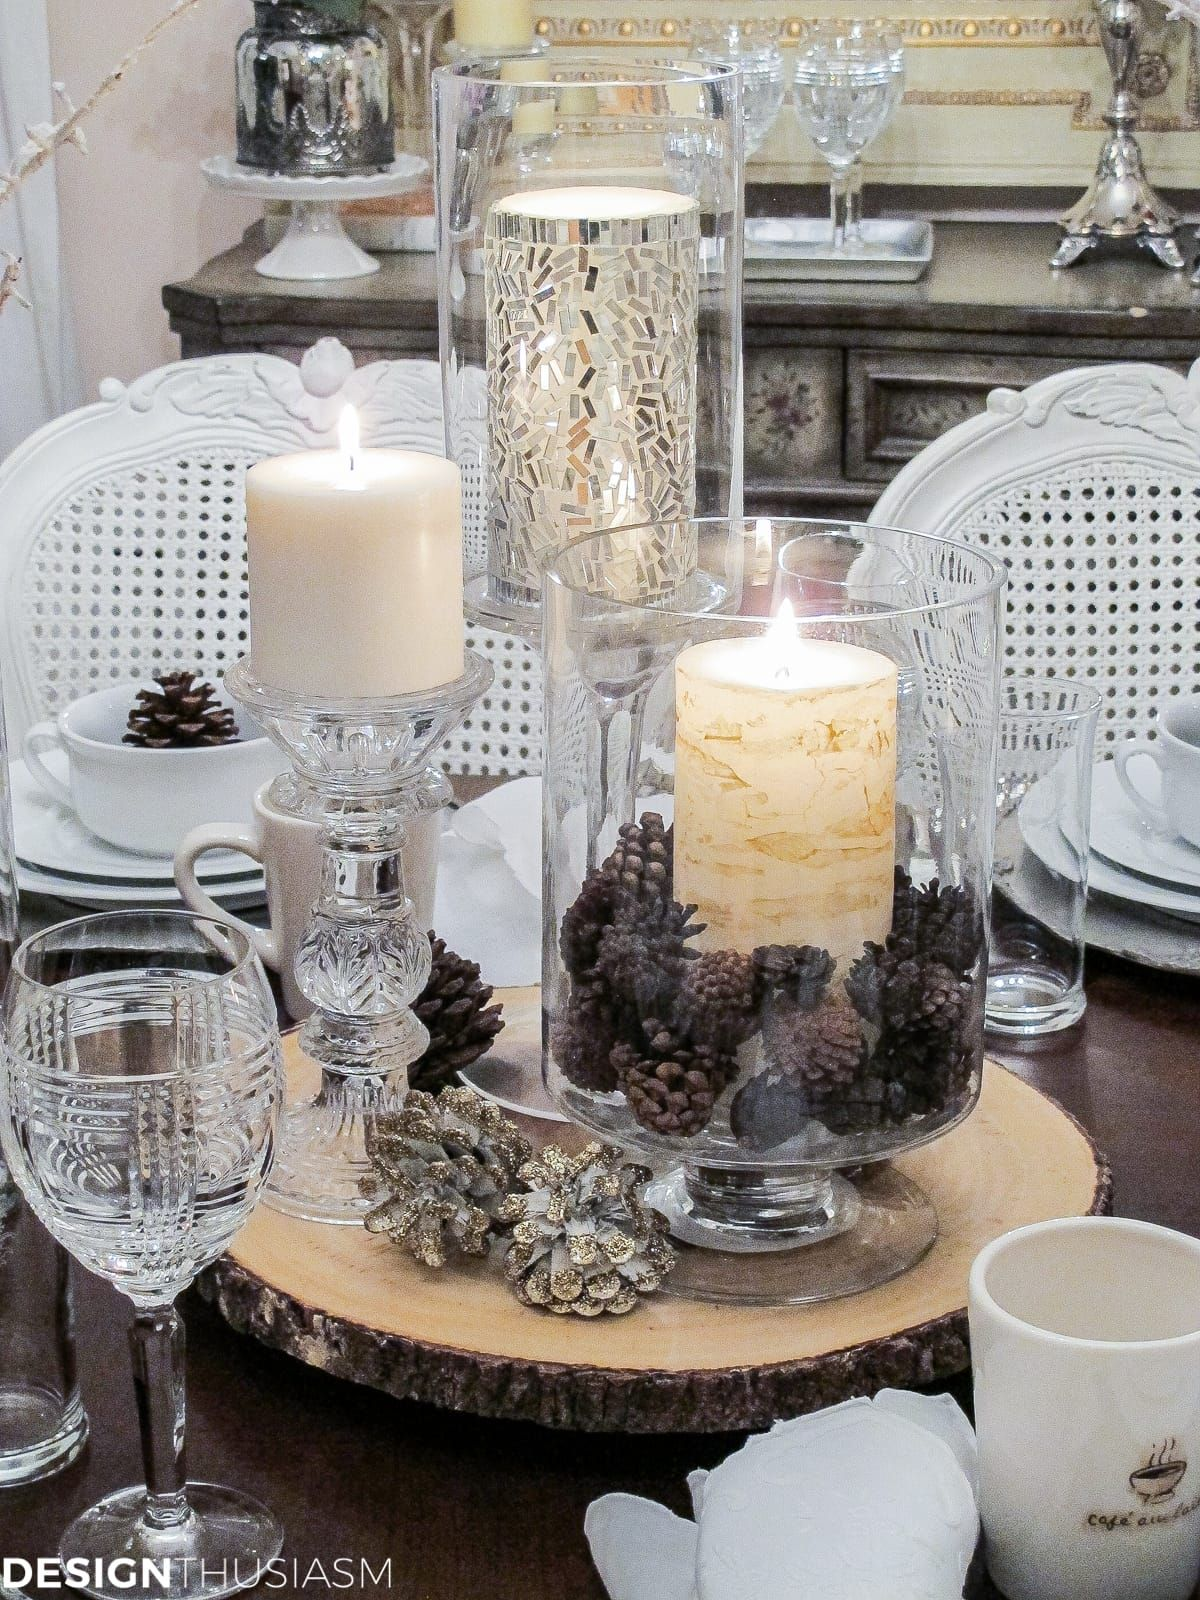 Winter Decorations Add Flavor To A White Tablescape - Designthuisasmcom